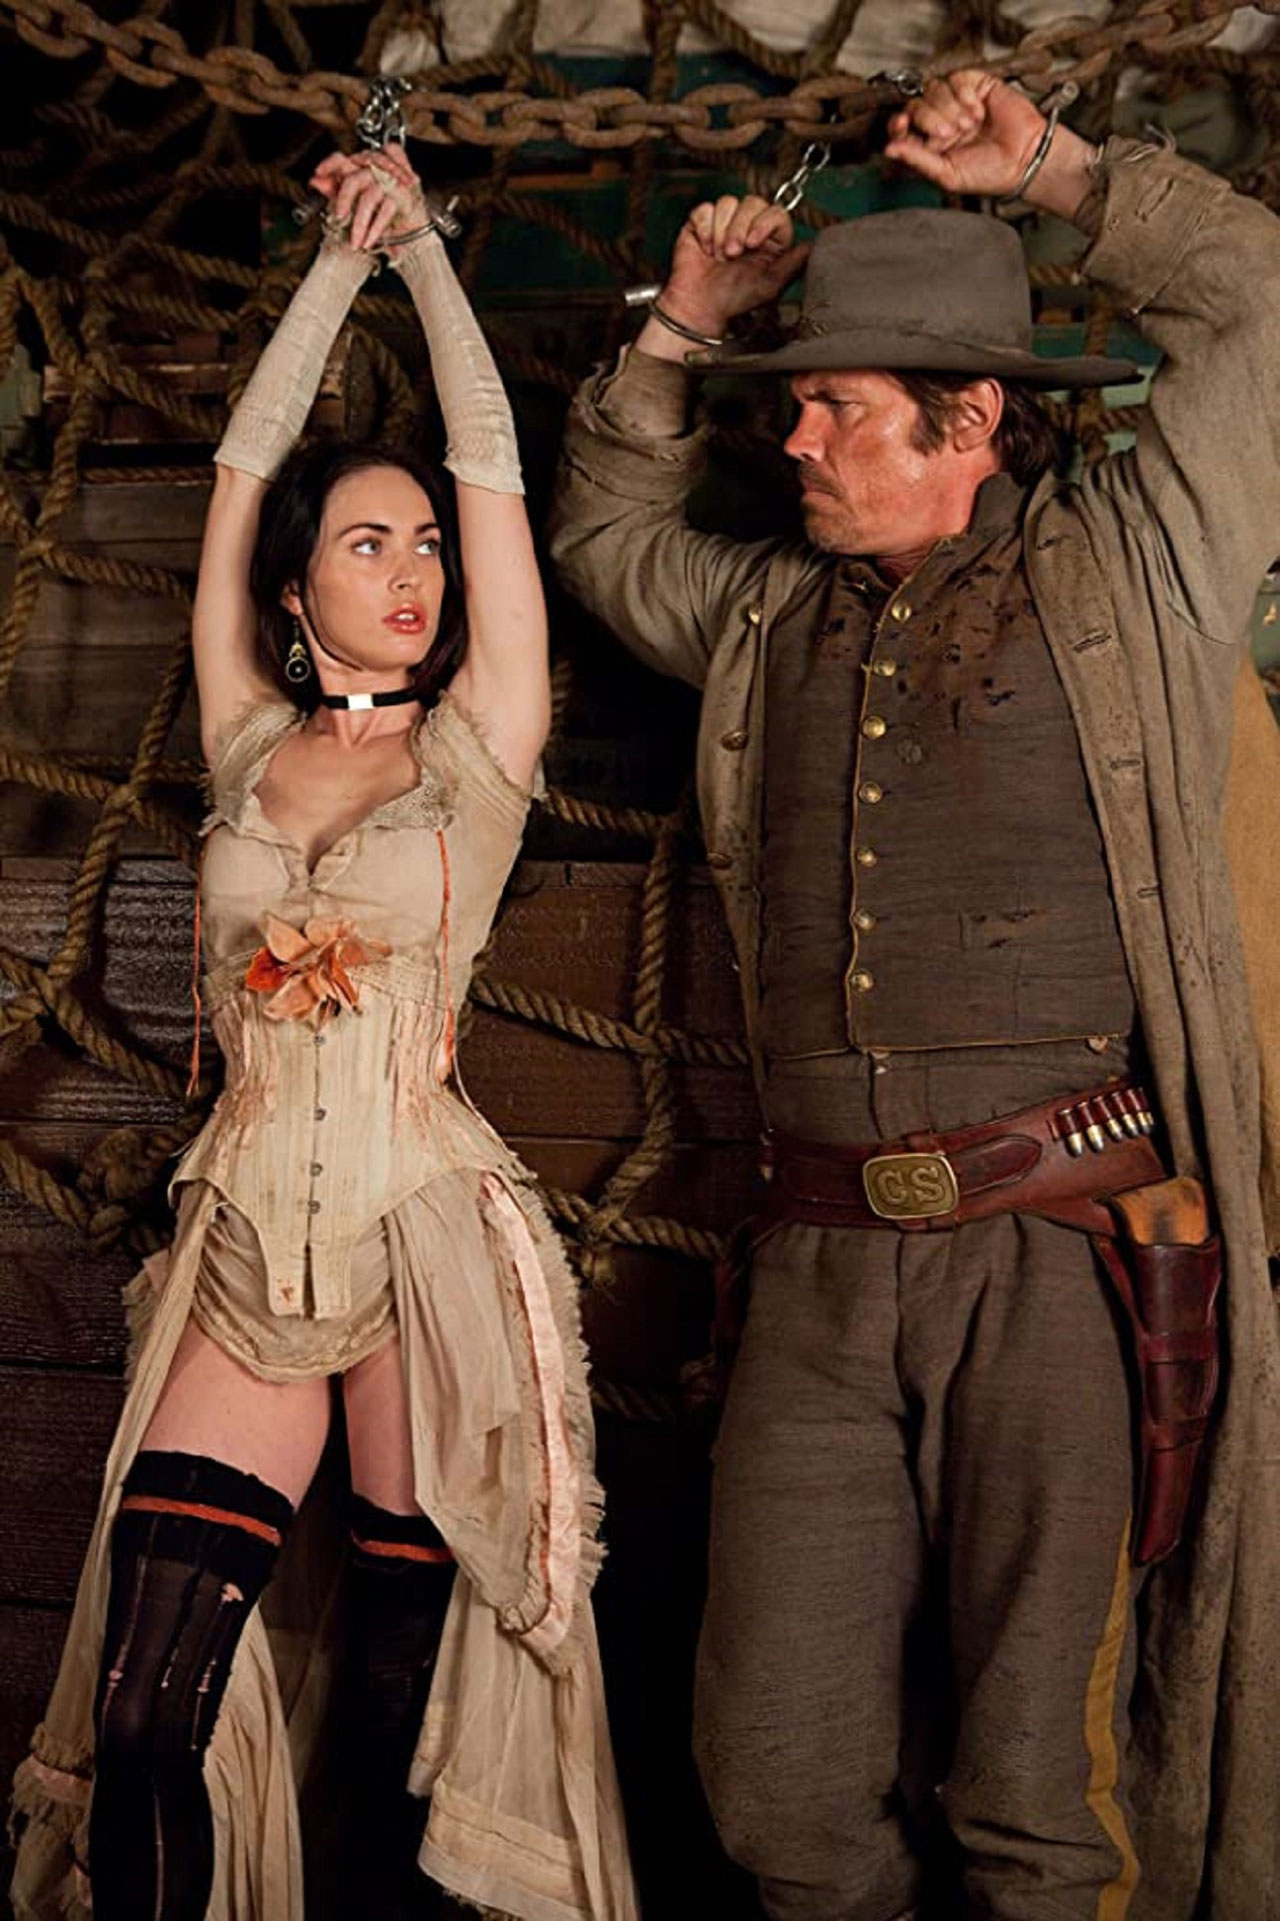 Jonah-Hex-Megan-Fox.jpg